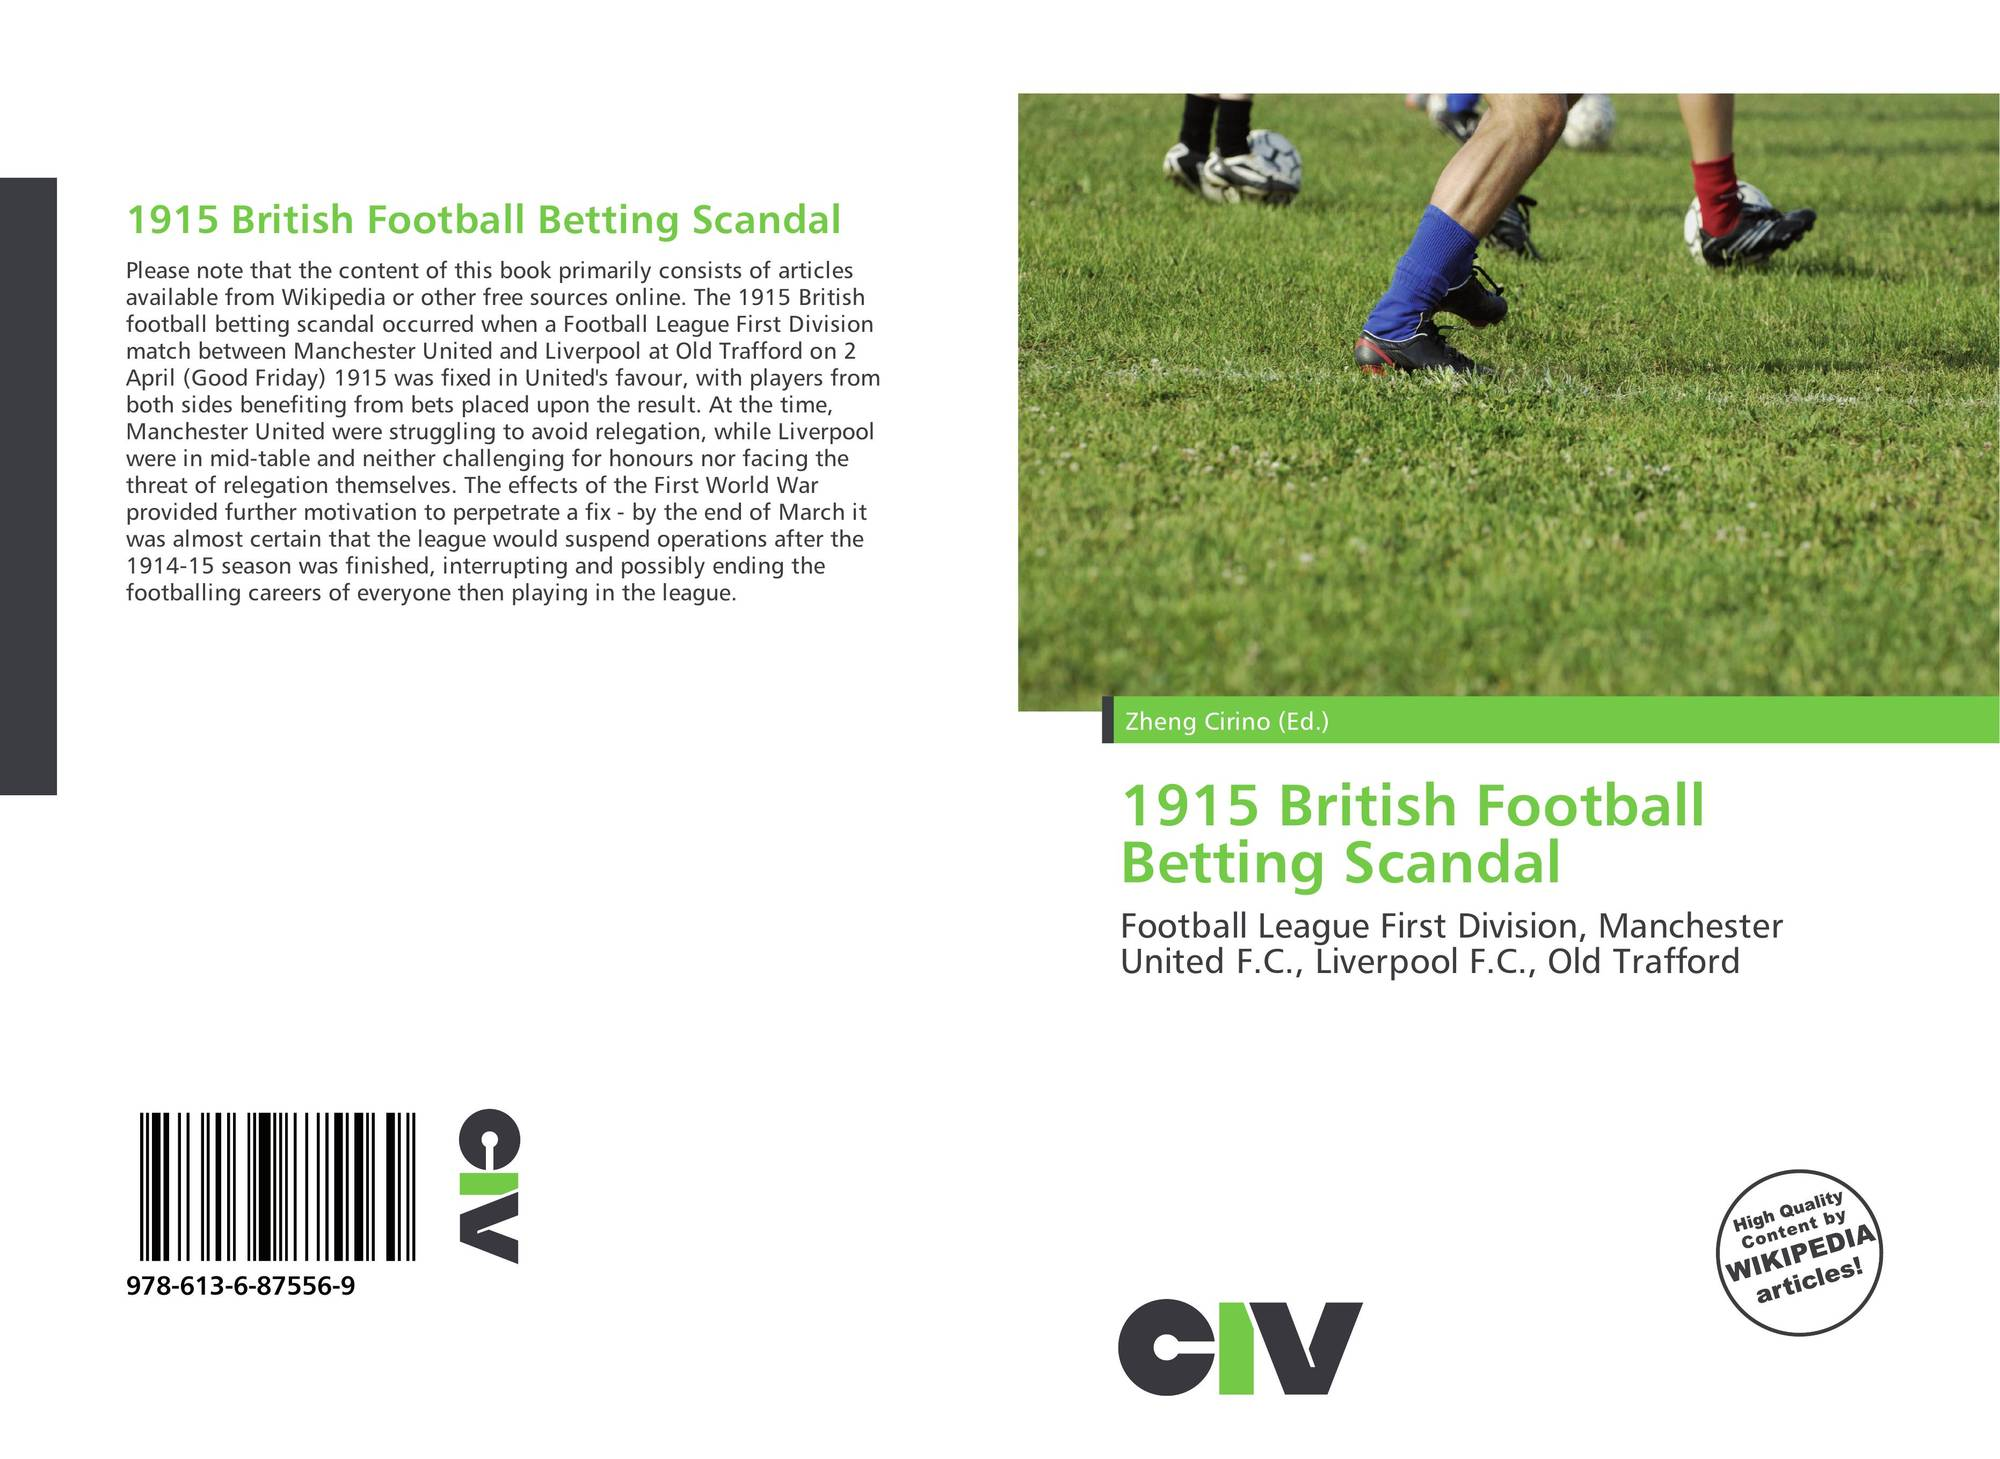 1964 british betting scandal football fanatics quadrella betting calculator american